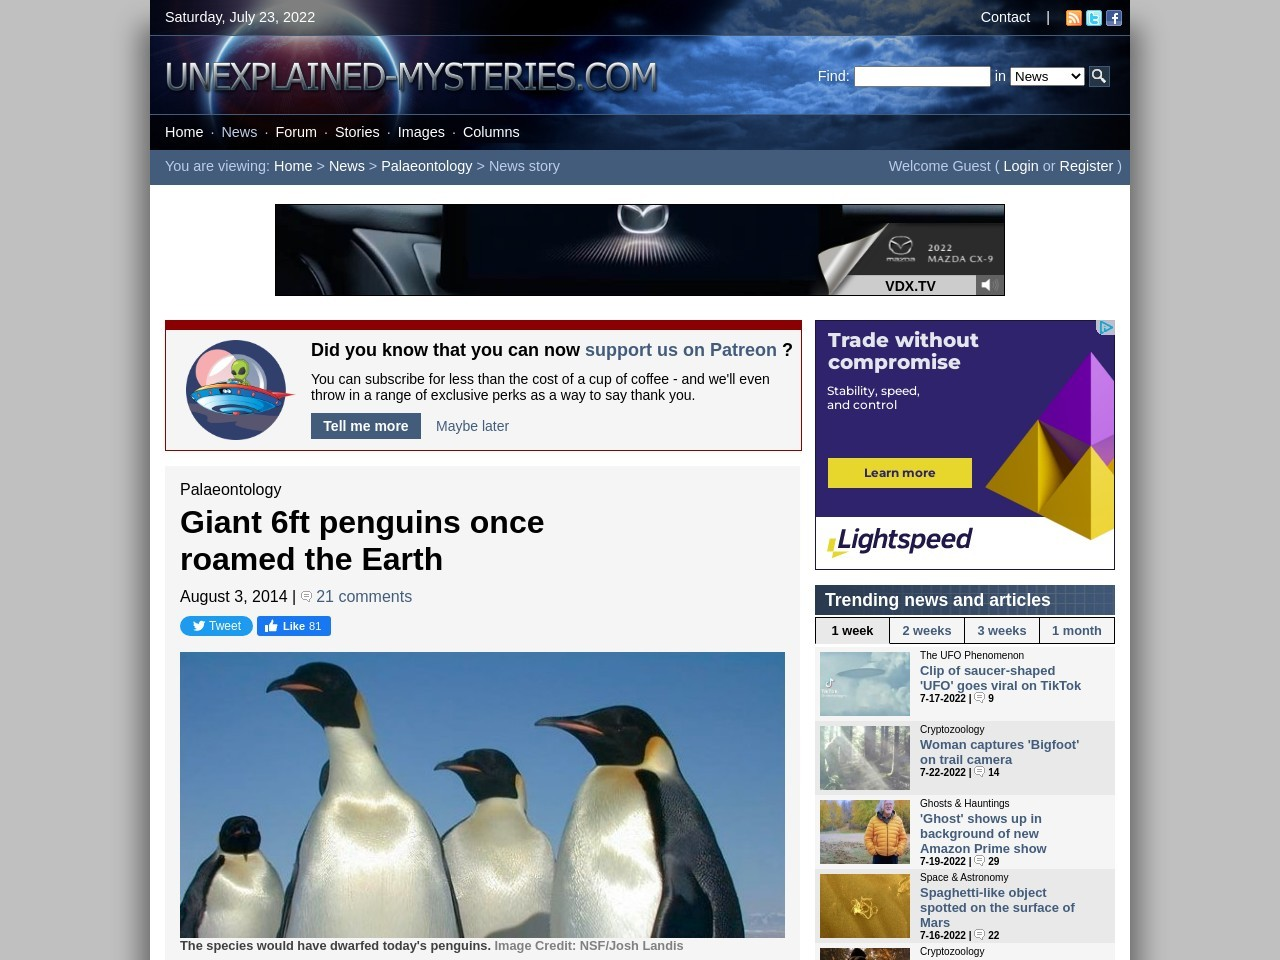 Giant 6ft penguins once roamed the Earth